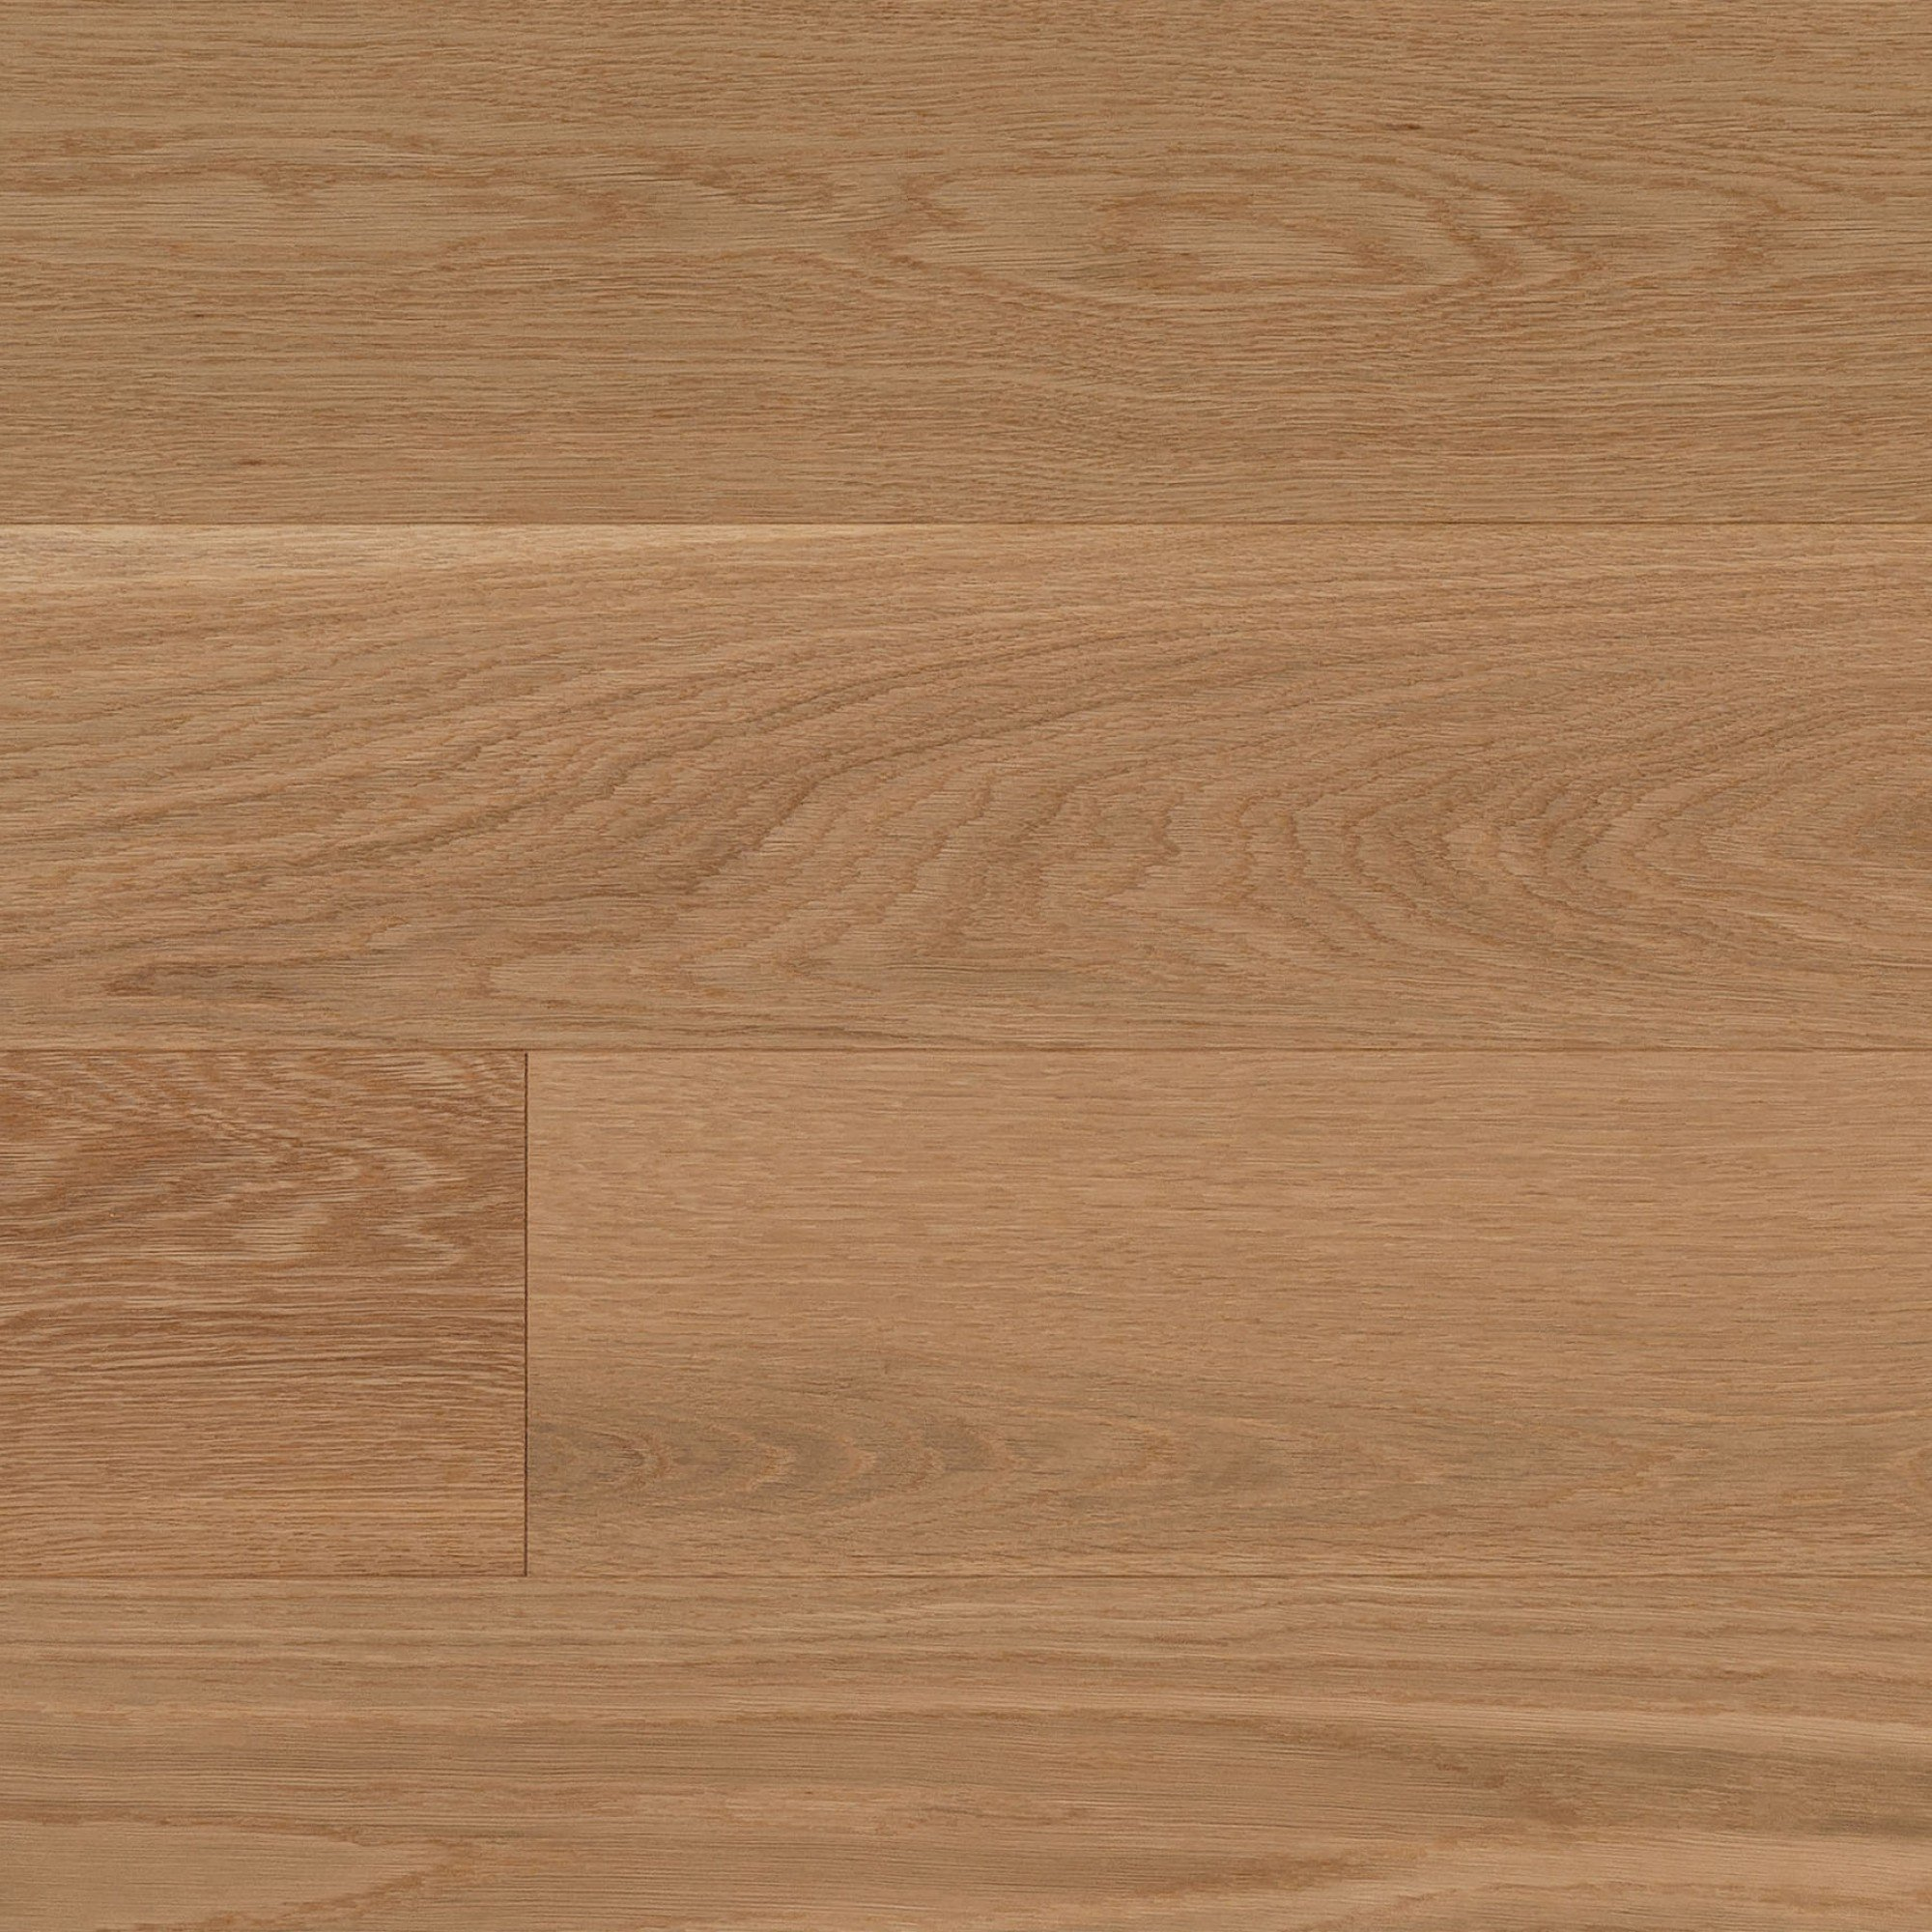 Natural White Oak Exclusive Brushed Mirage Hardwood Floors